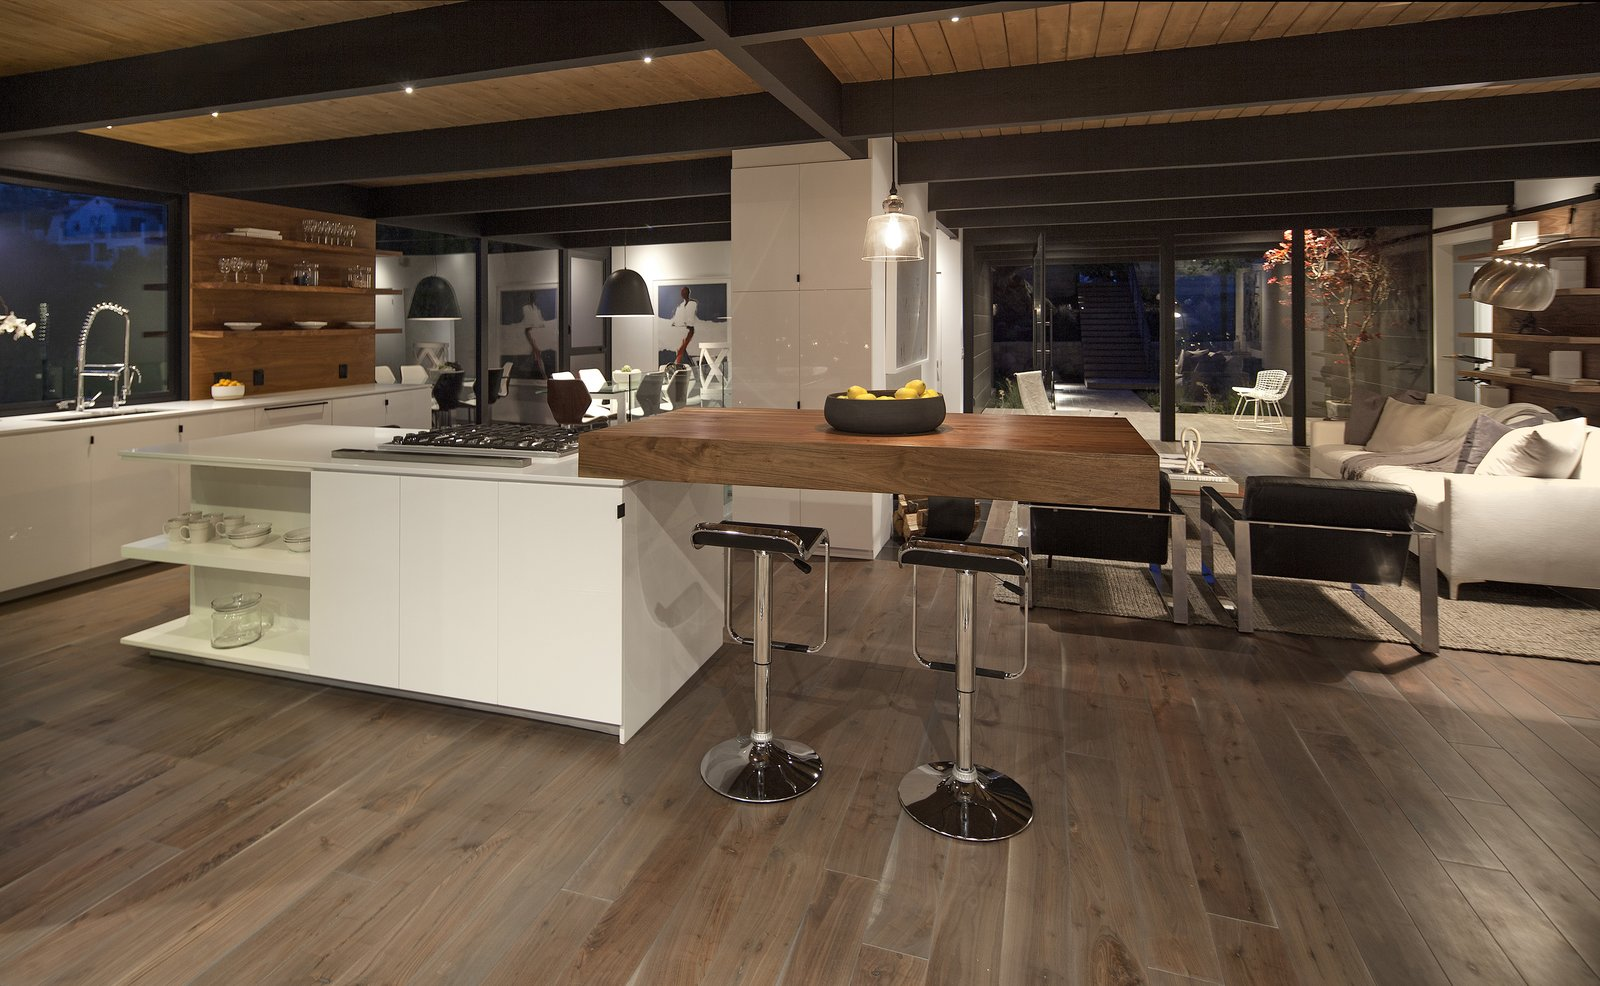 Kitchen, Engineered Quartz Counter, Recessed Lighting, and Medium Hardwood Floor  Paseo Ferrelo